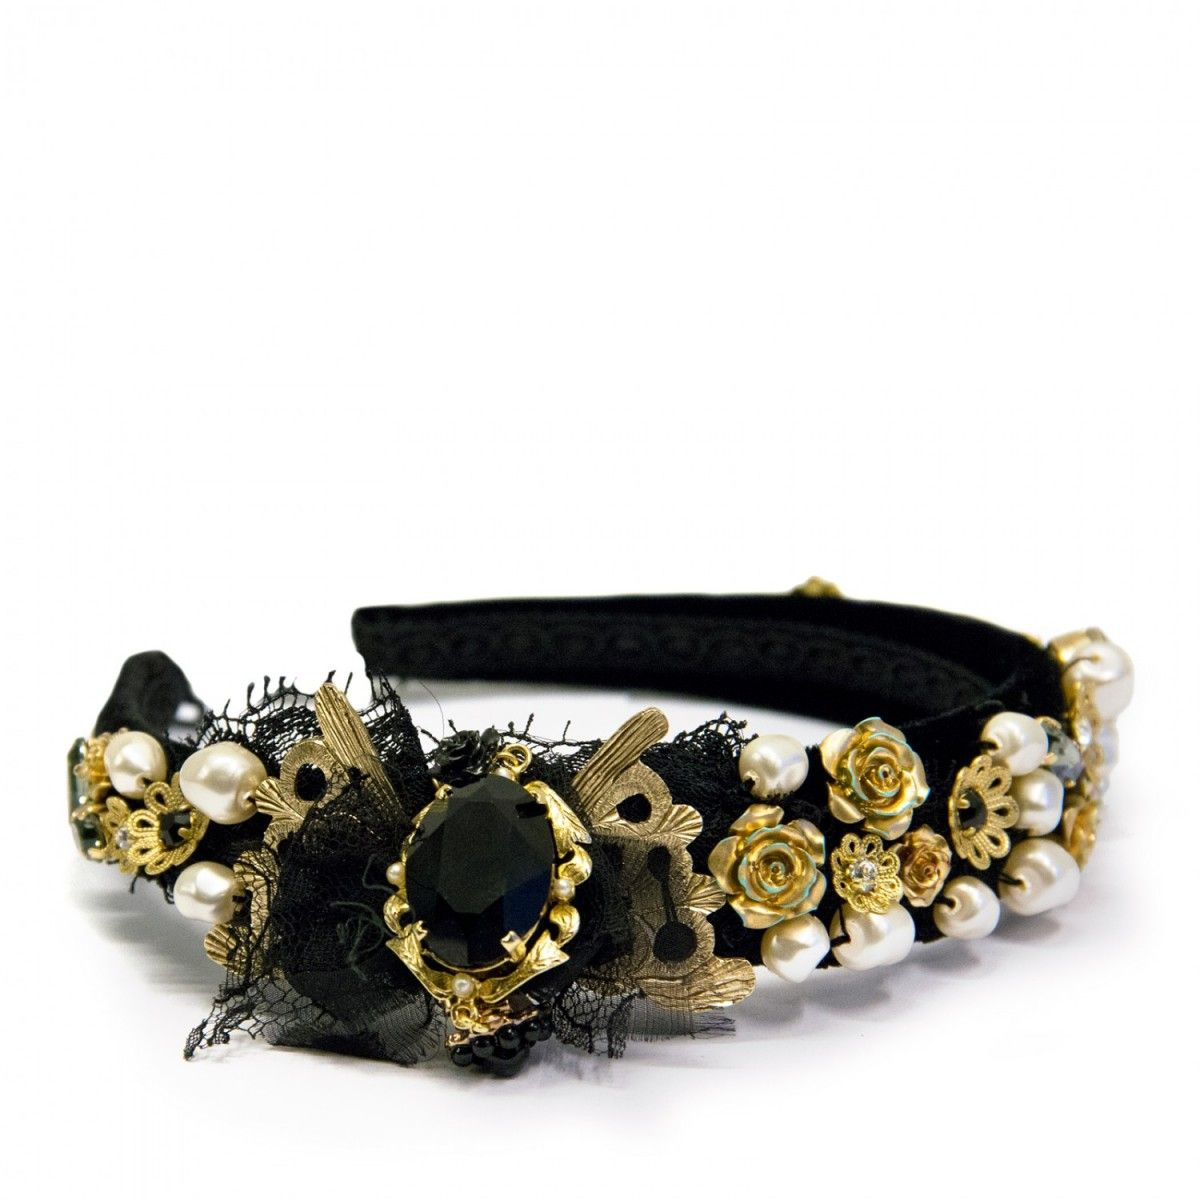 dolce and gabbana headband - use vintage brooches and old beads